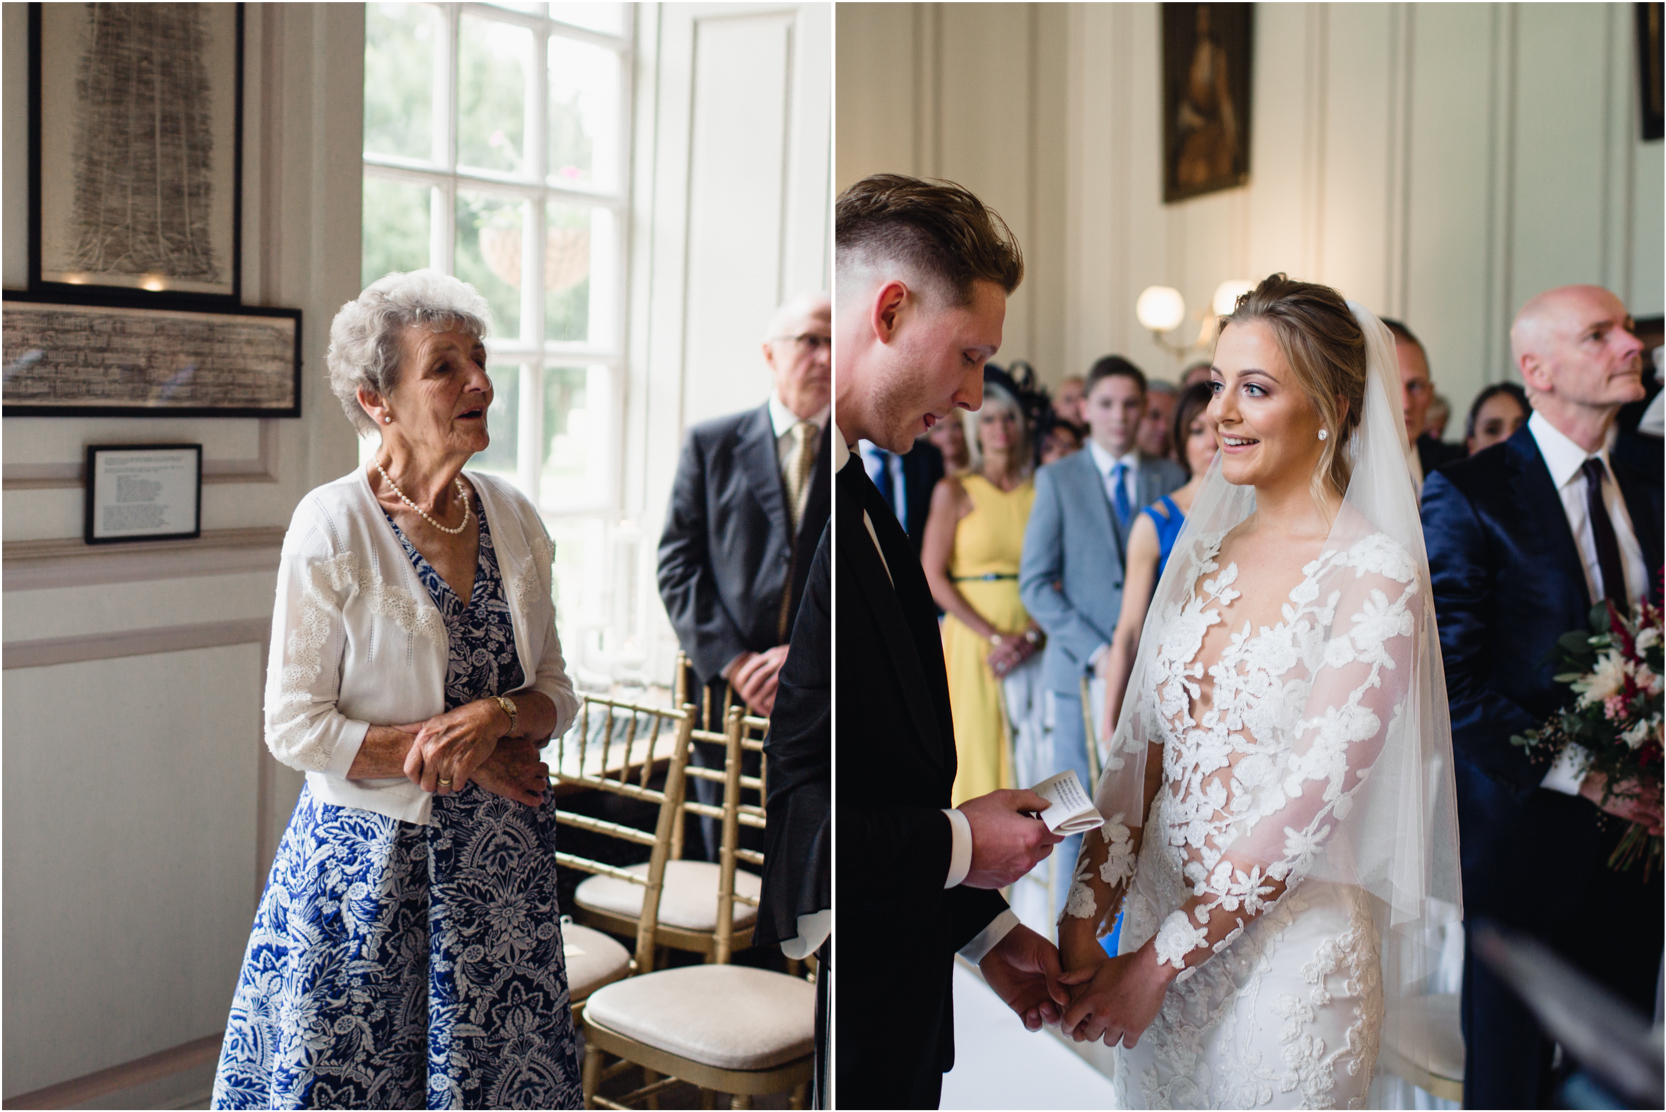 Gosfield Hall Wedding Photography Surrey Luxury Photographer 45.jpg